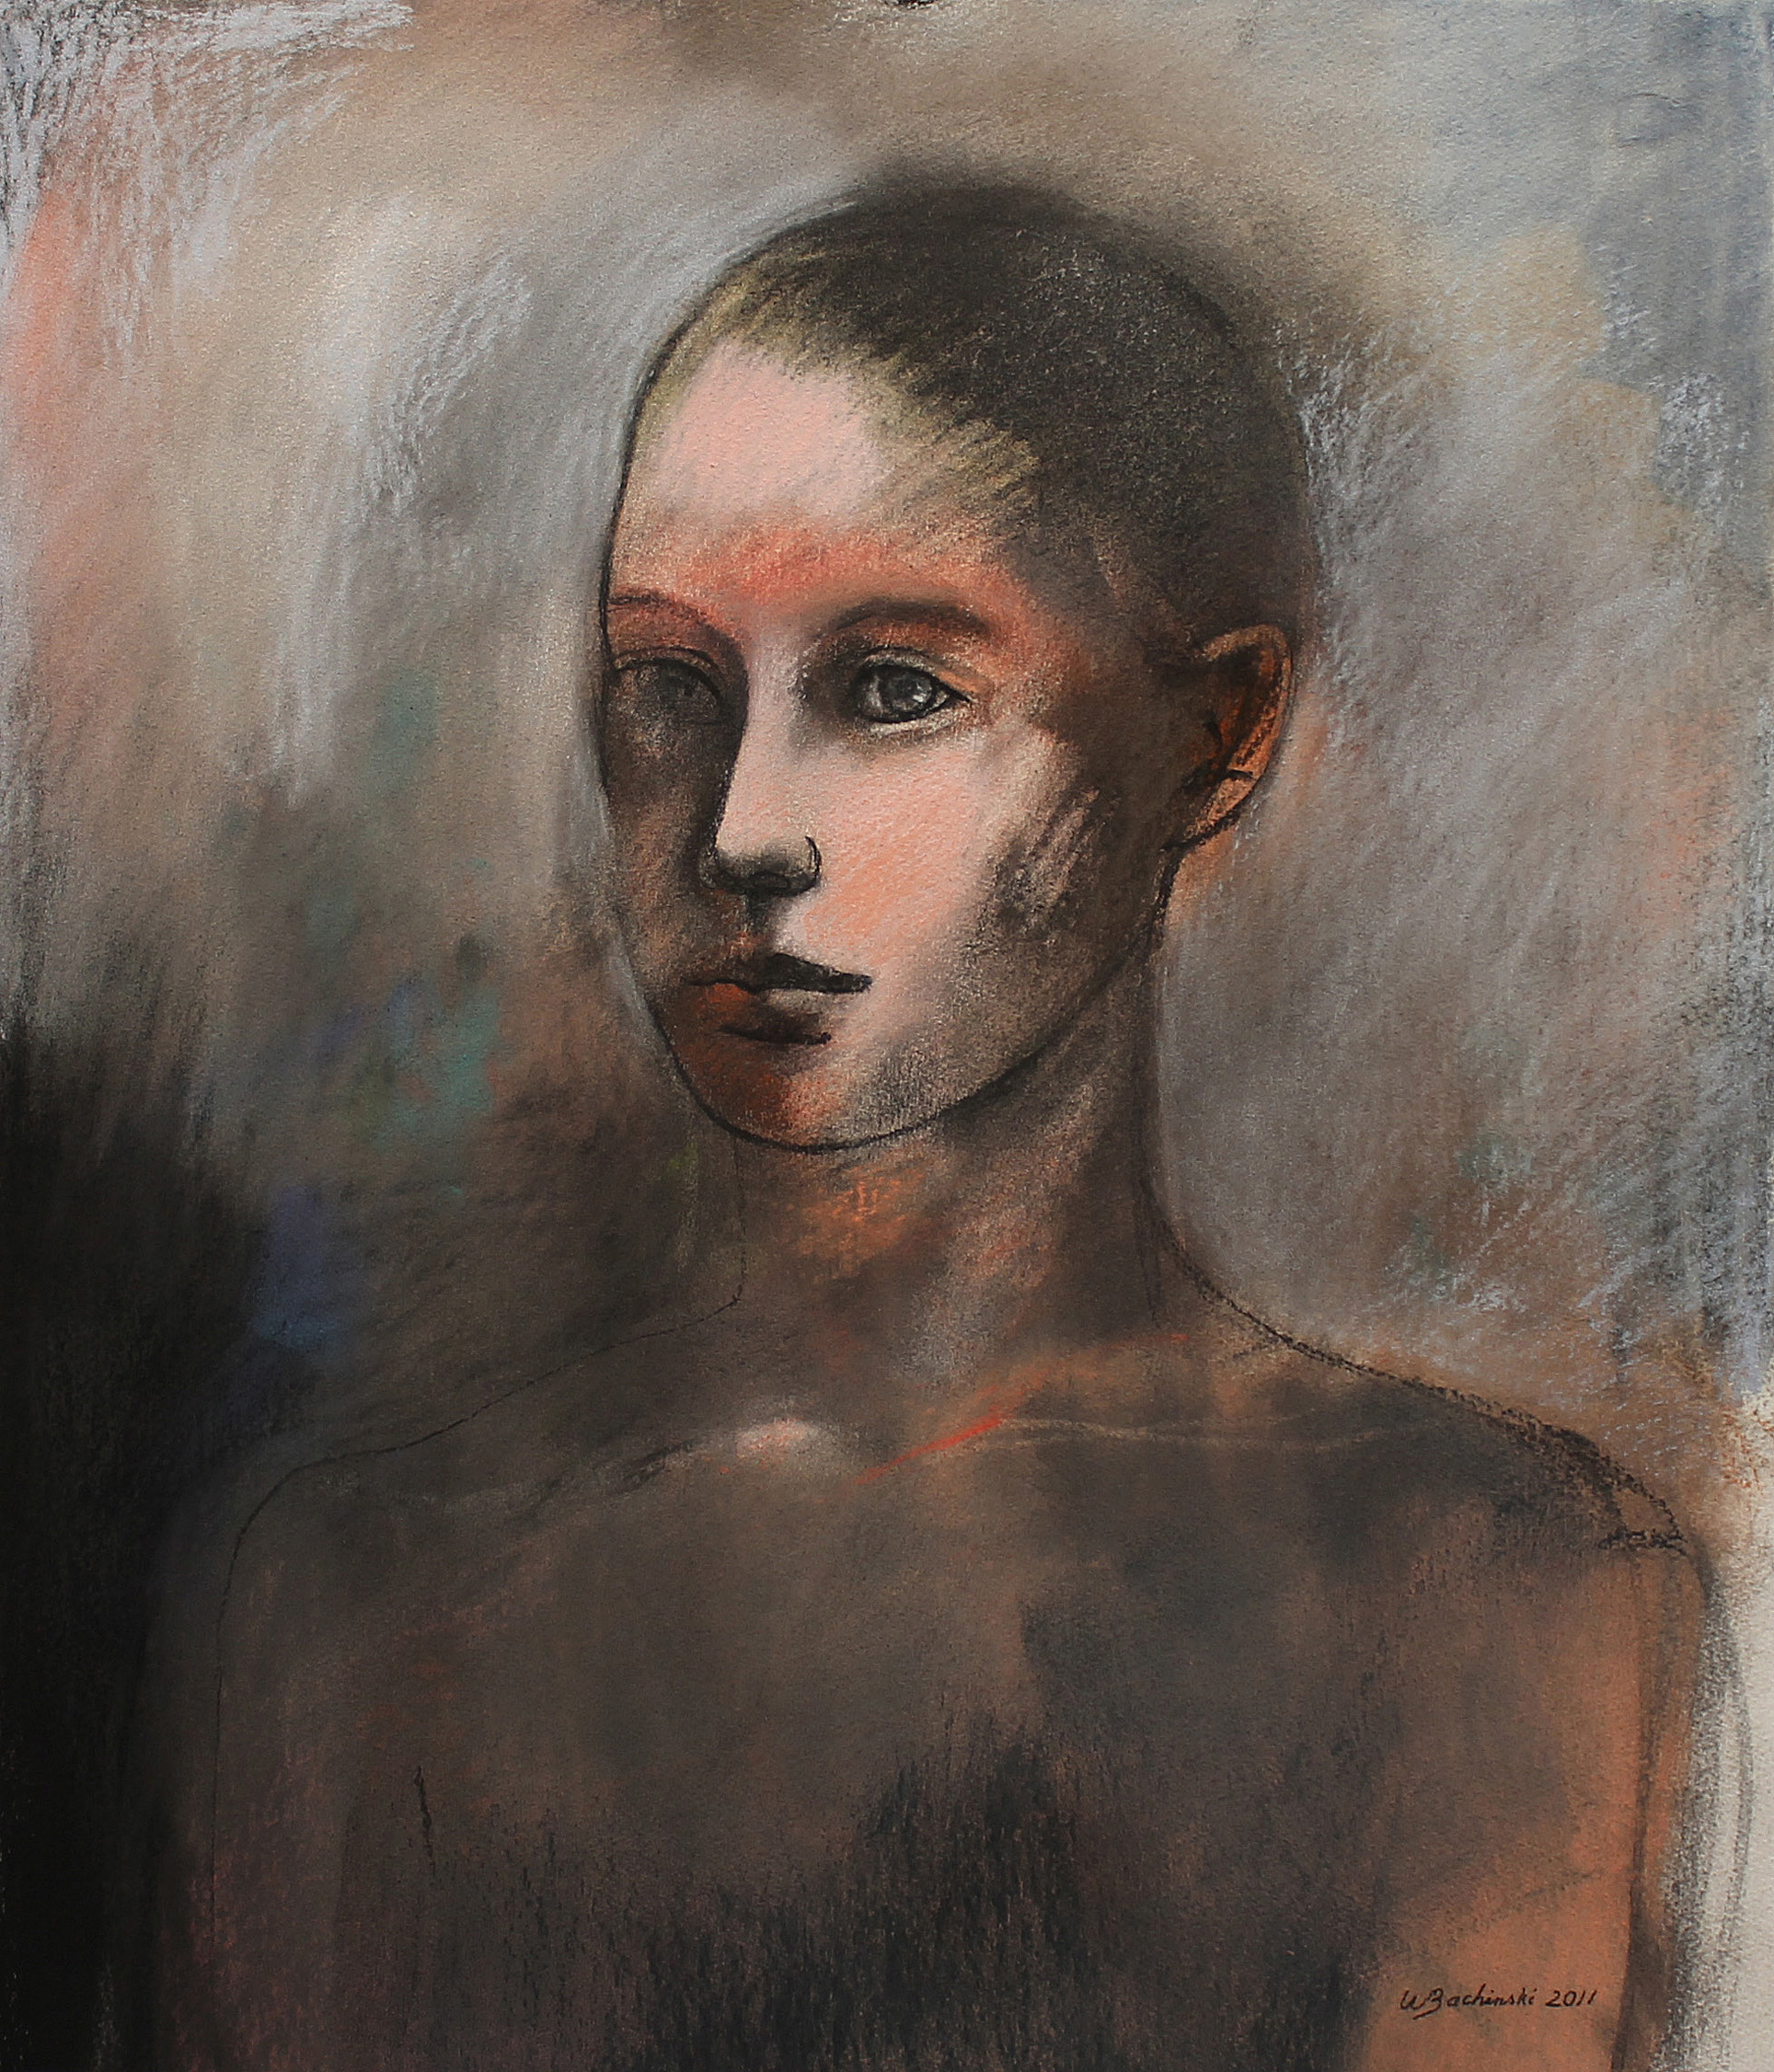 Young Man (Gray Ground), 2011, 22.38 x 20.25 inches, Pastel on paper